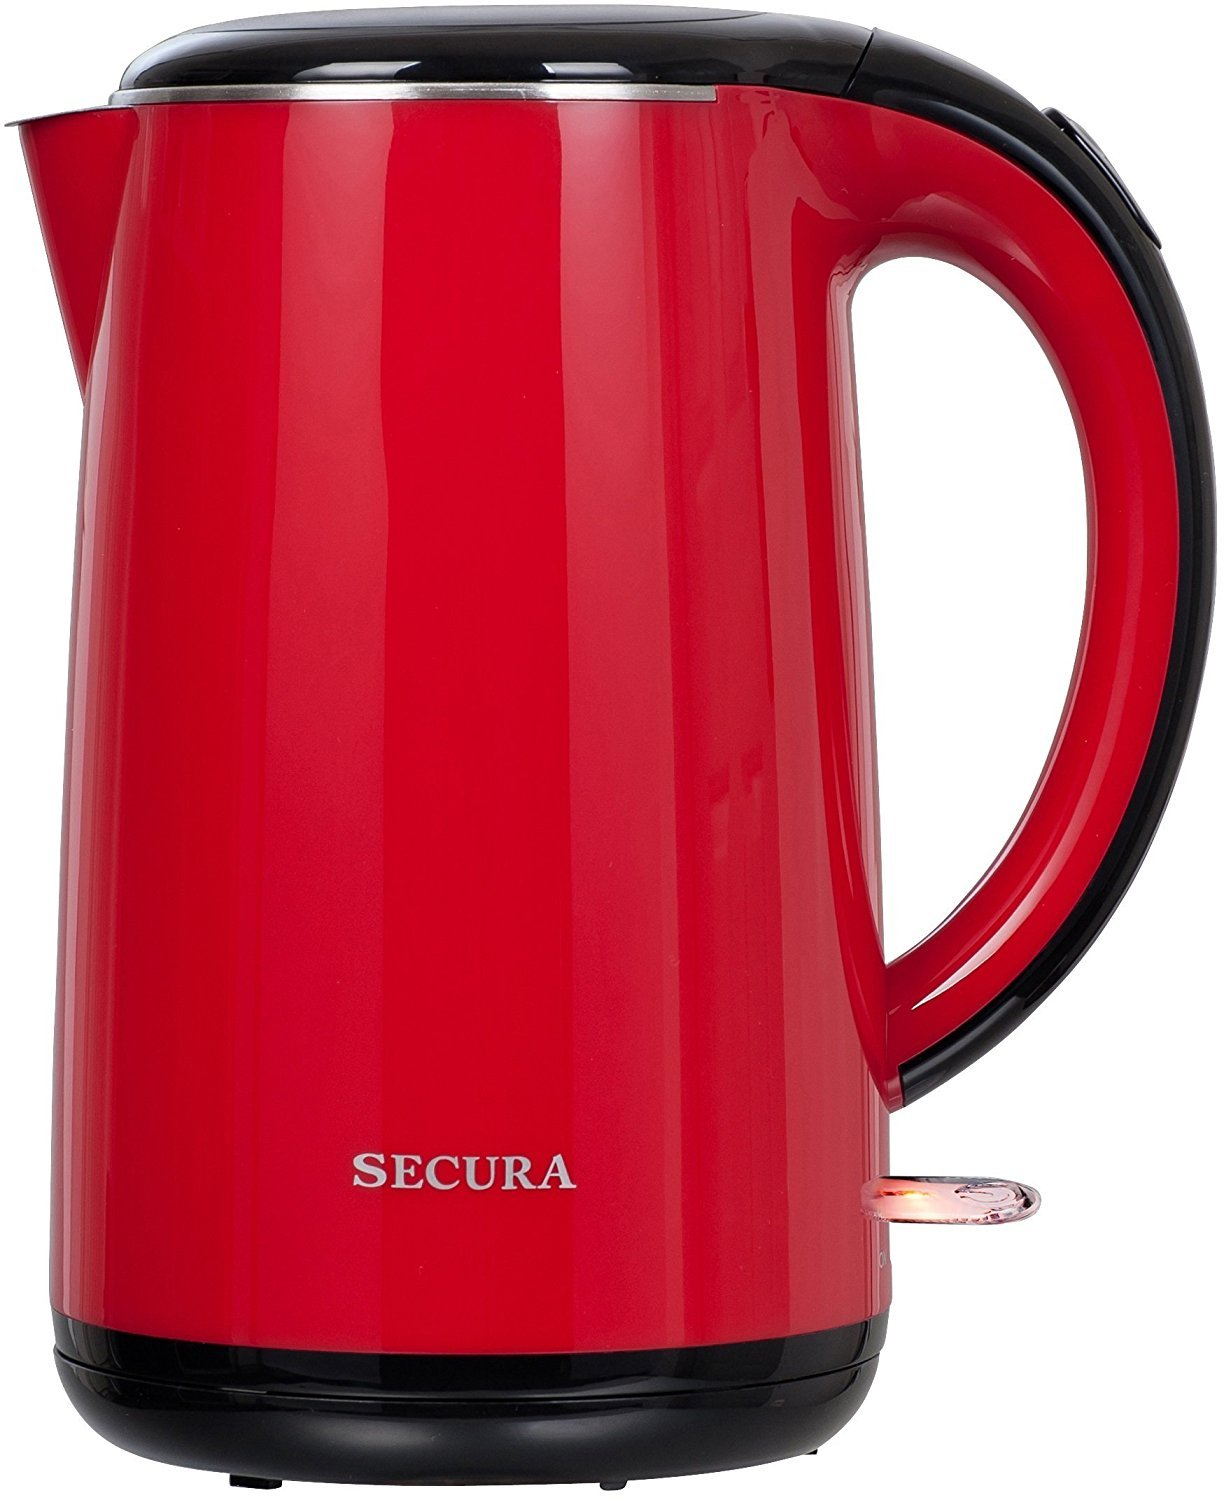 Secura SWK-1701DB The Original Stainless Steel Double Wall Electric Water Kettle 1.8 Quart, Red